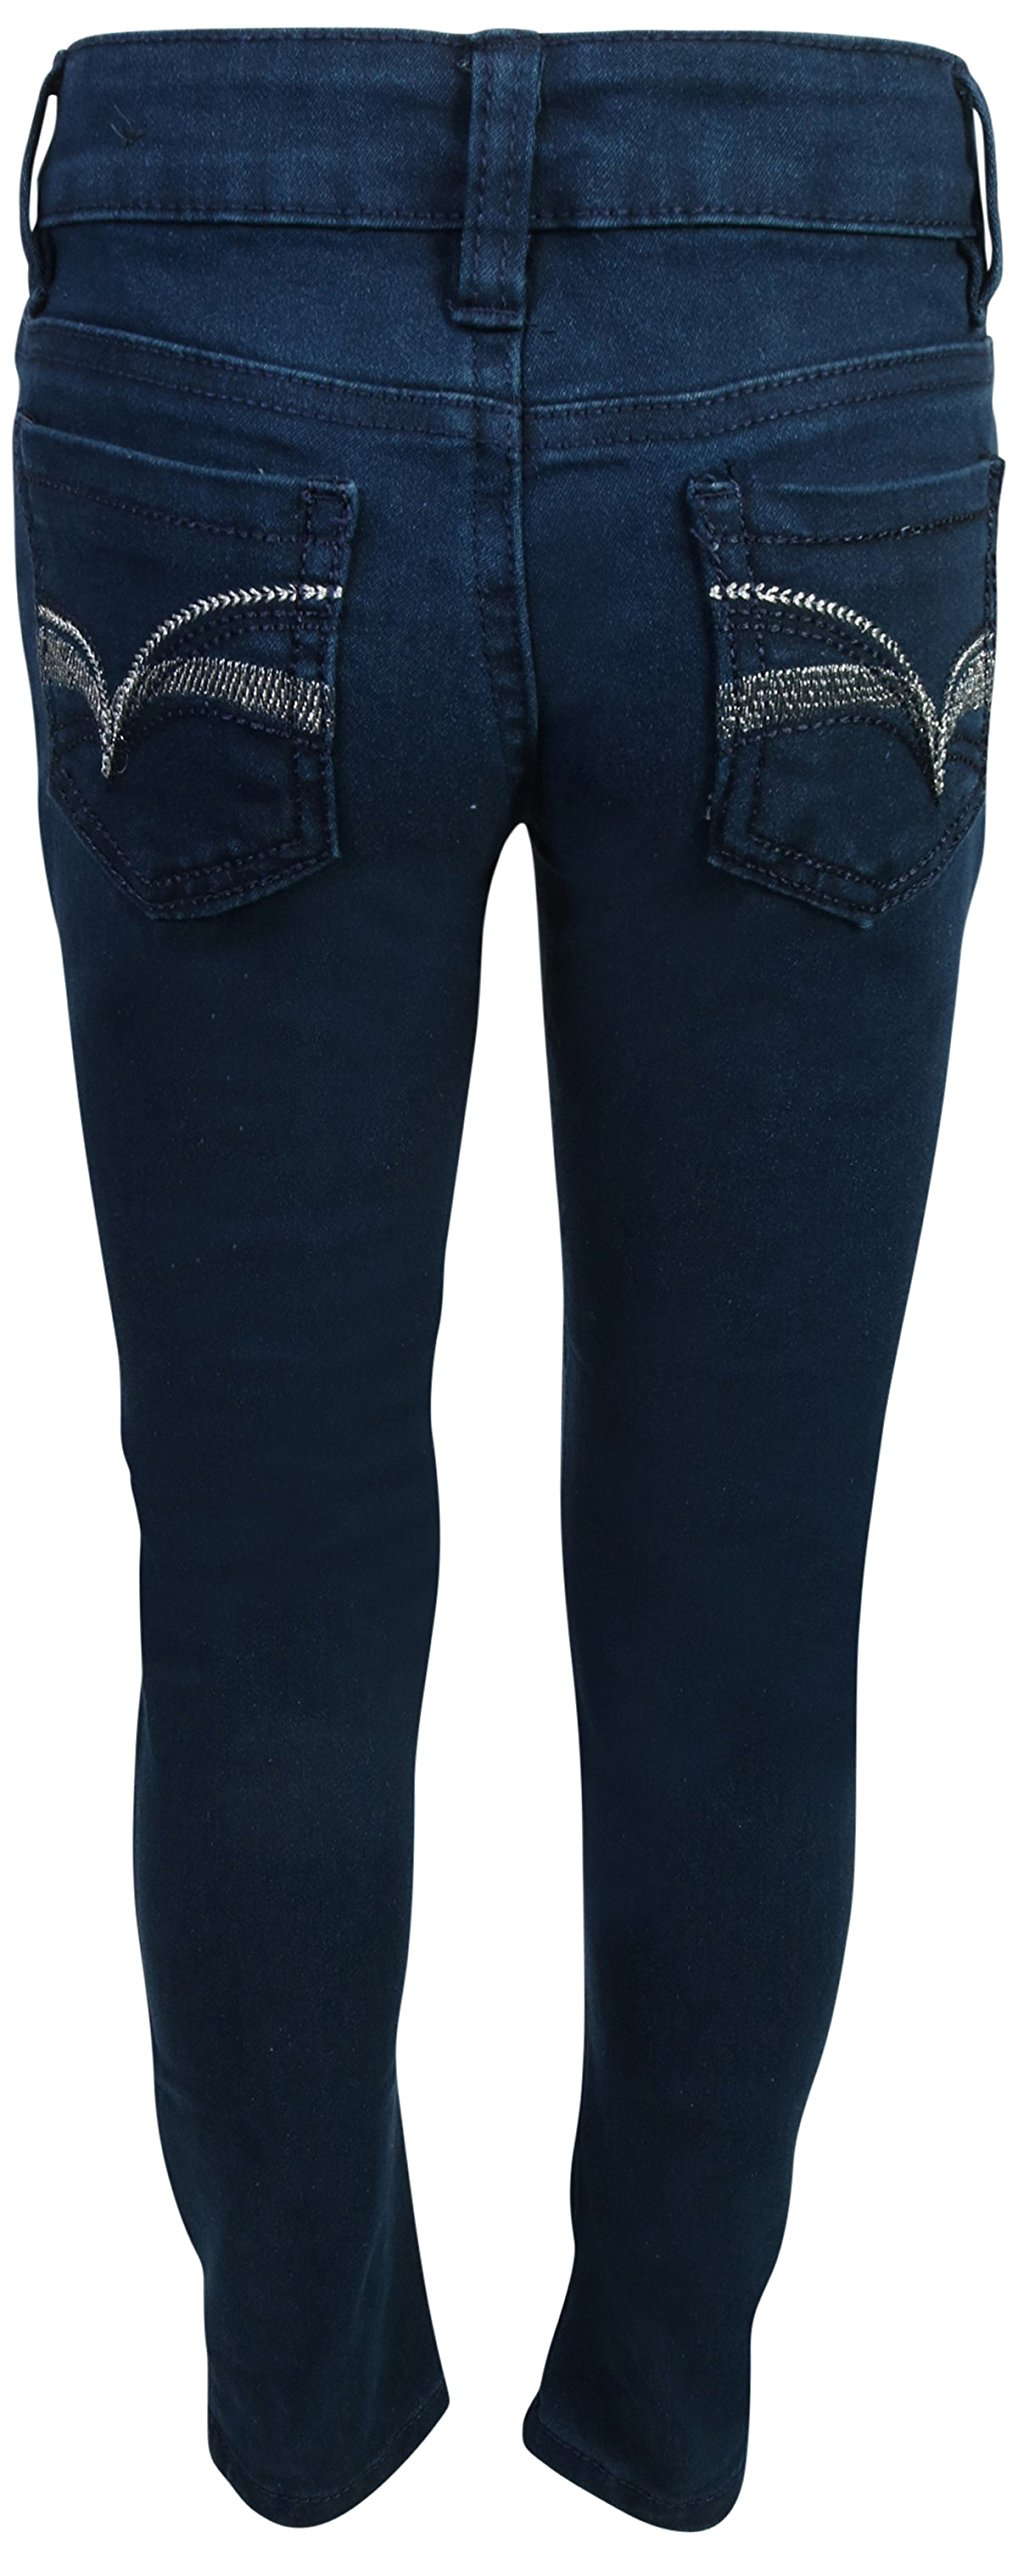 Real Love Girls Skinny Jeans, Black & Blue (2 Pack) Size 6 by Real Love (Image #5)